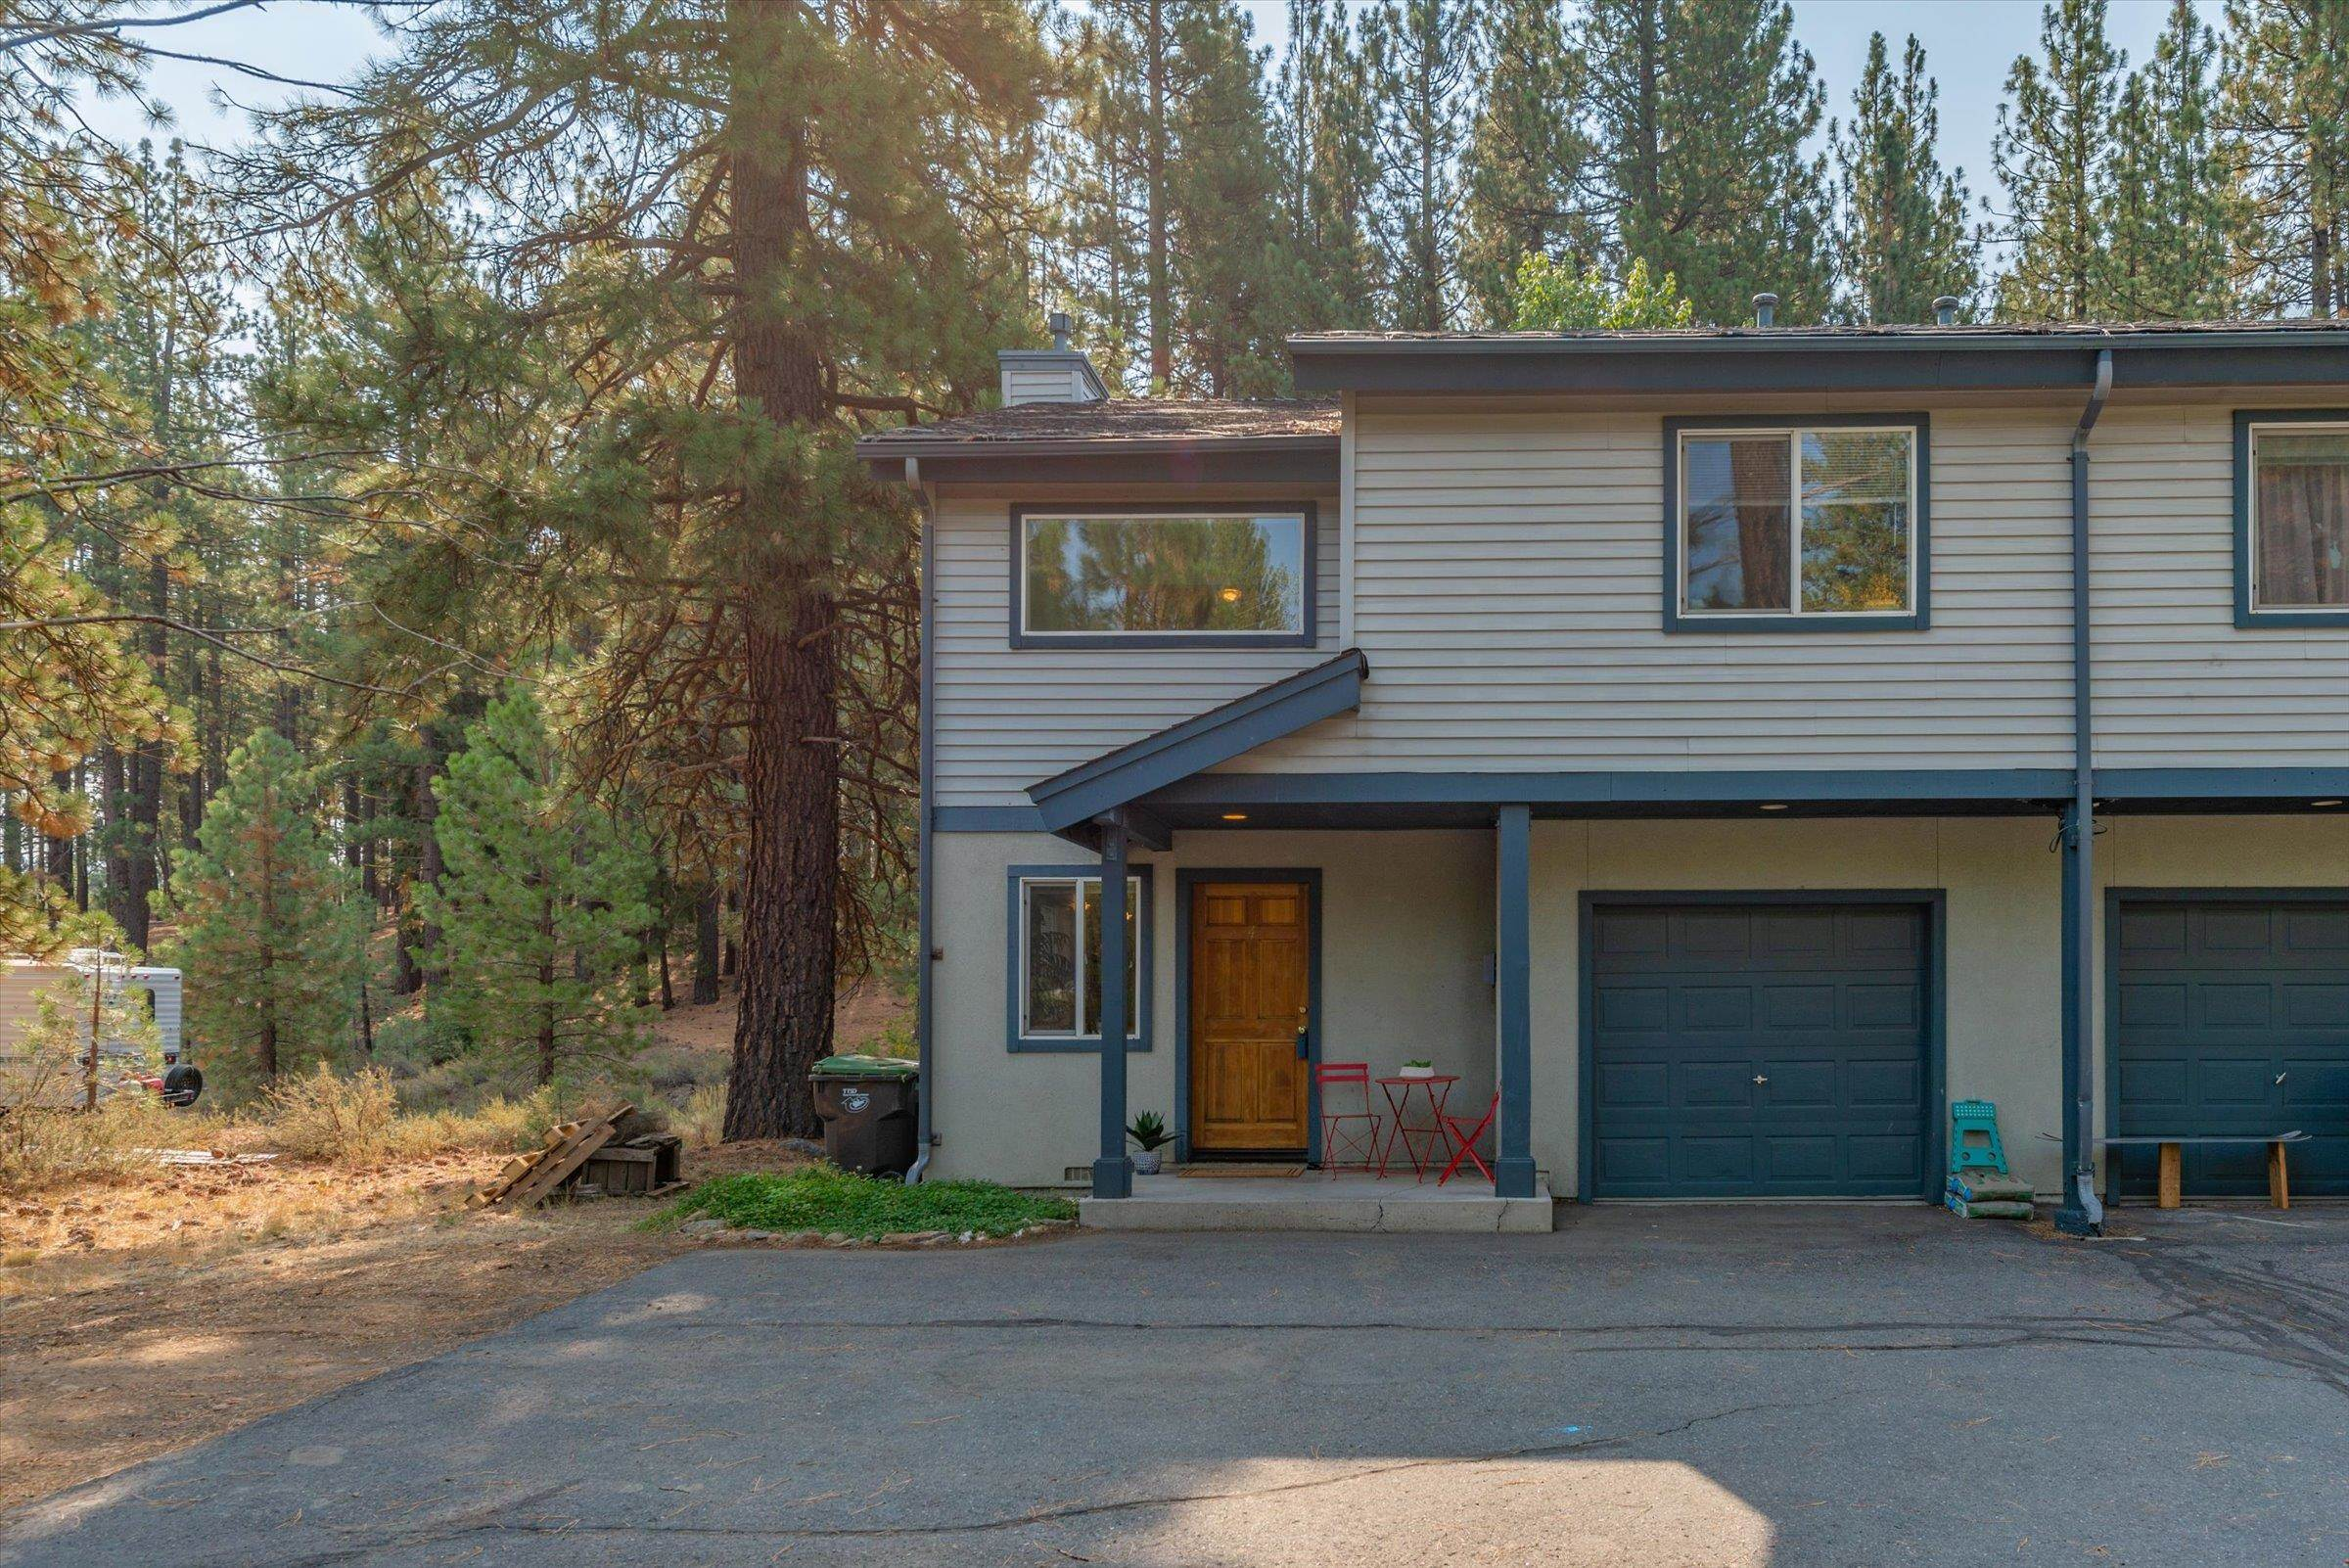 Image for 10145 Martis Valley Road, Truckee, CA 96161